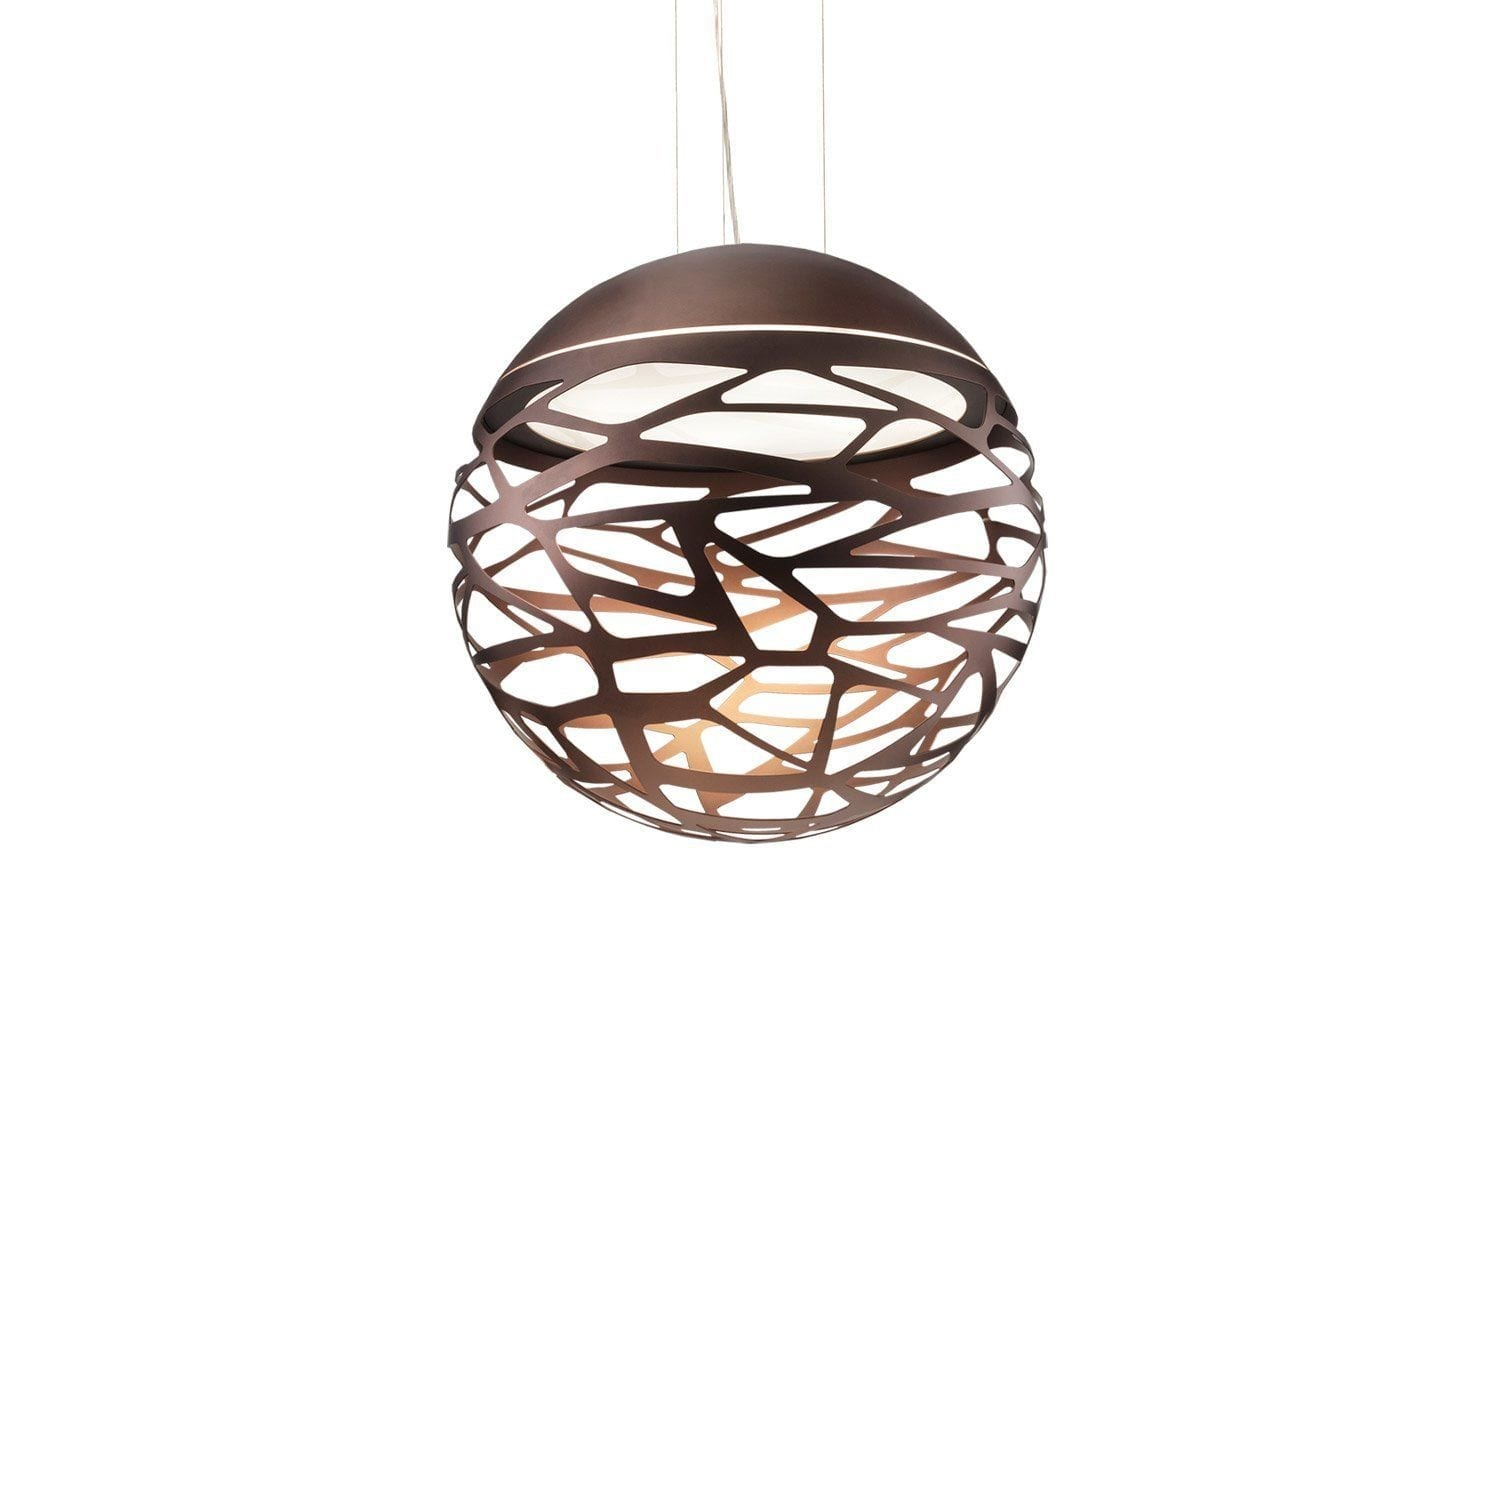 Studio italia kelly sphere 18 lid design for Artemide outlet days 2017